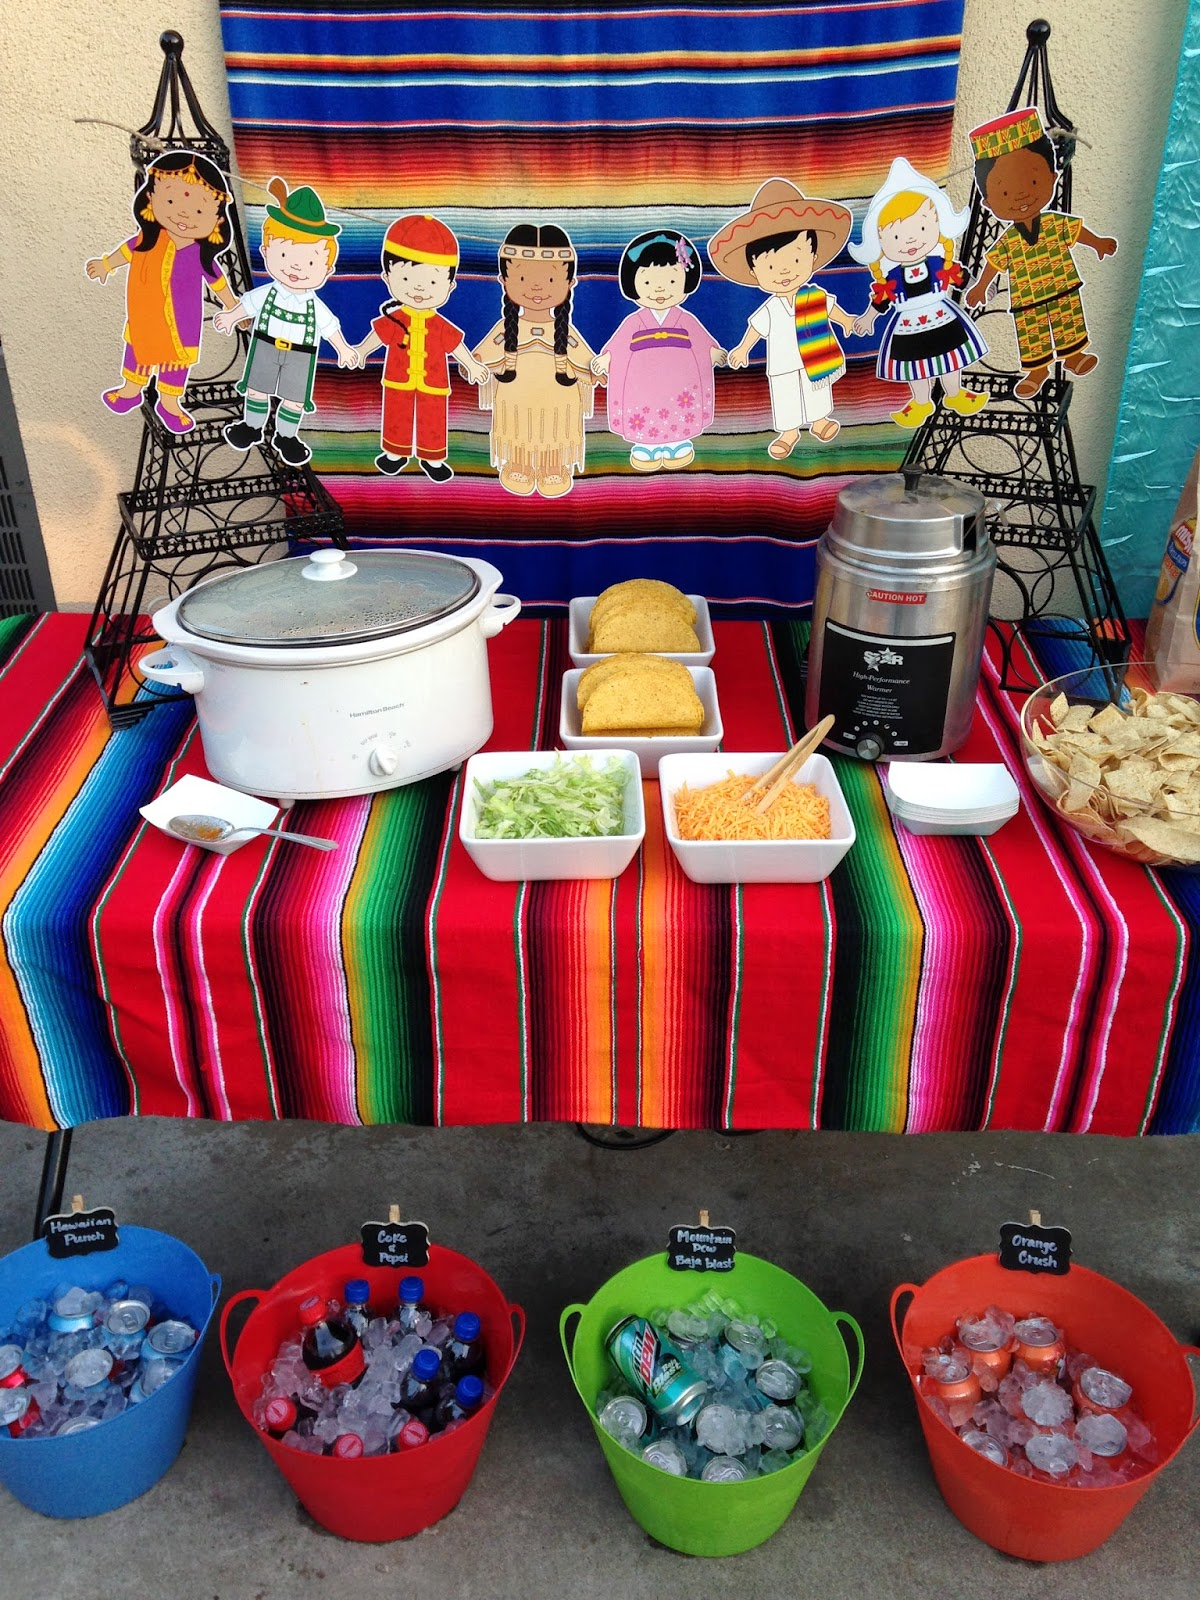 Graduation Party Ideas Perfect for Any Graduate. I want to share my best graduation party ideas and tips with you. With four kids, I have hosted my fair share of graduation parties.